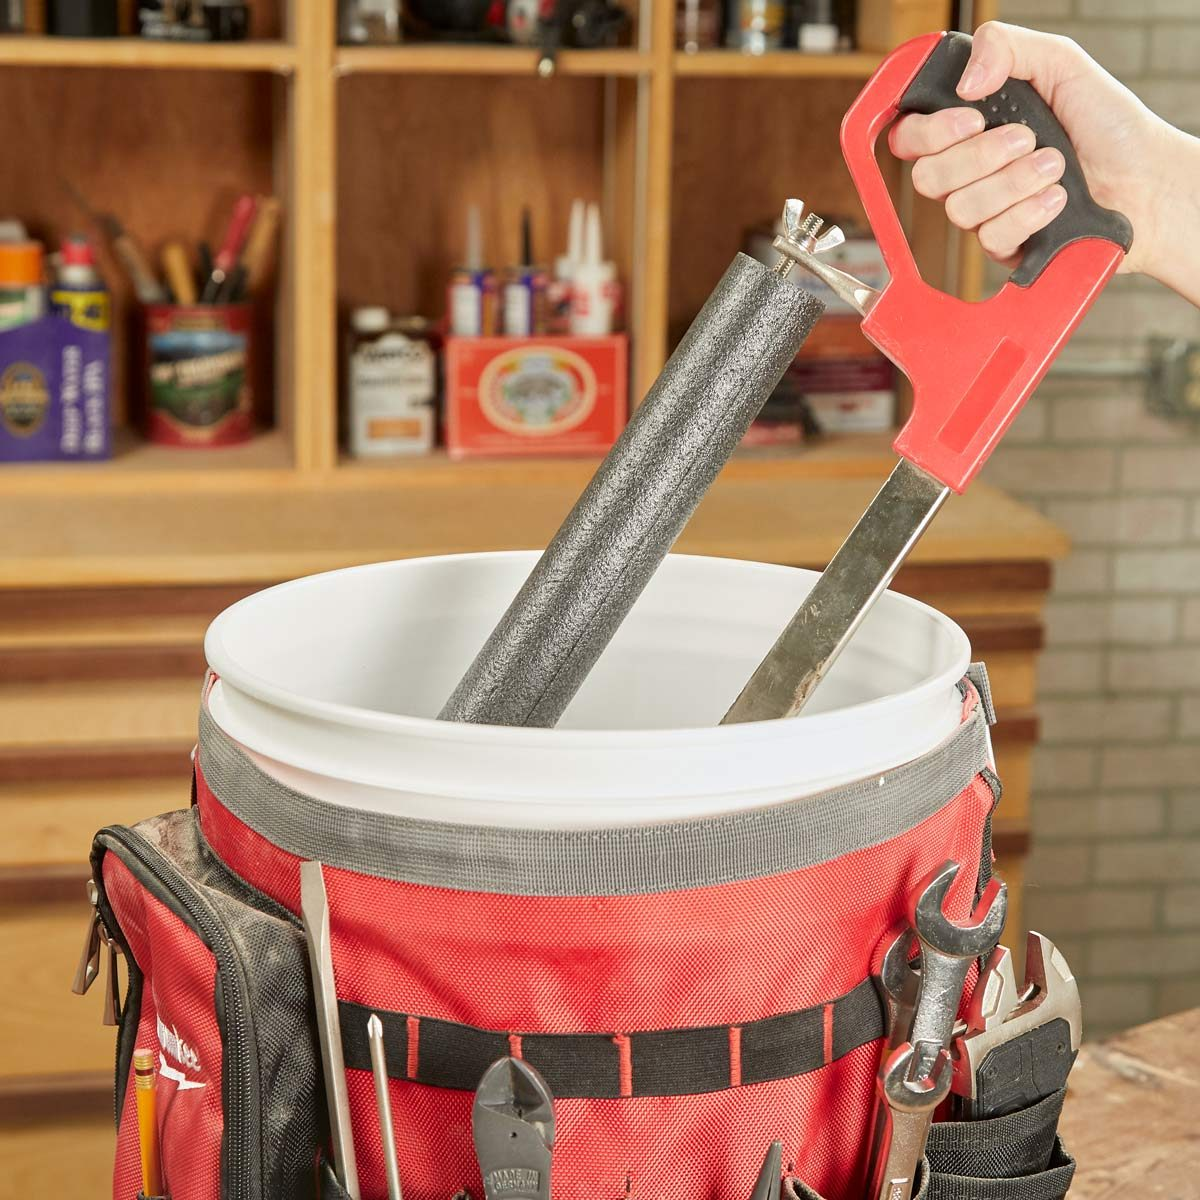 HH hacksaw blade protection pipe insulation